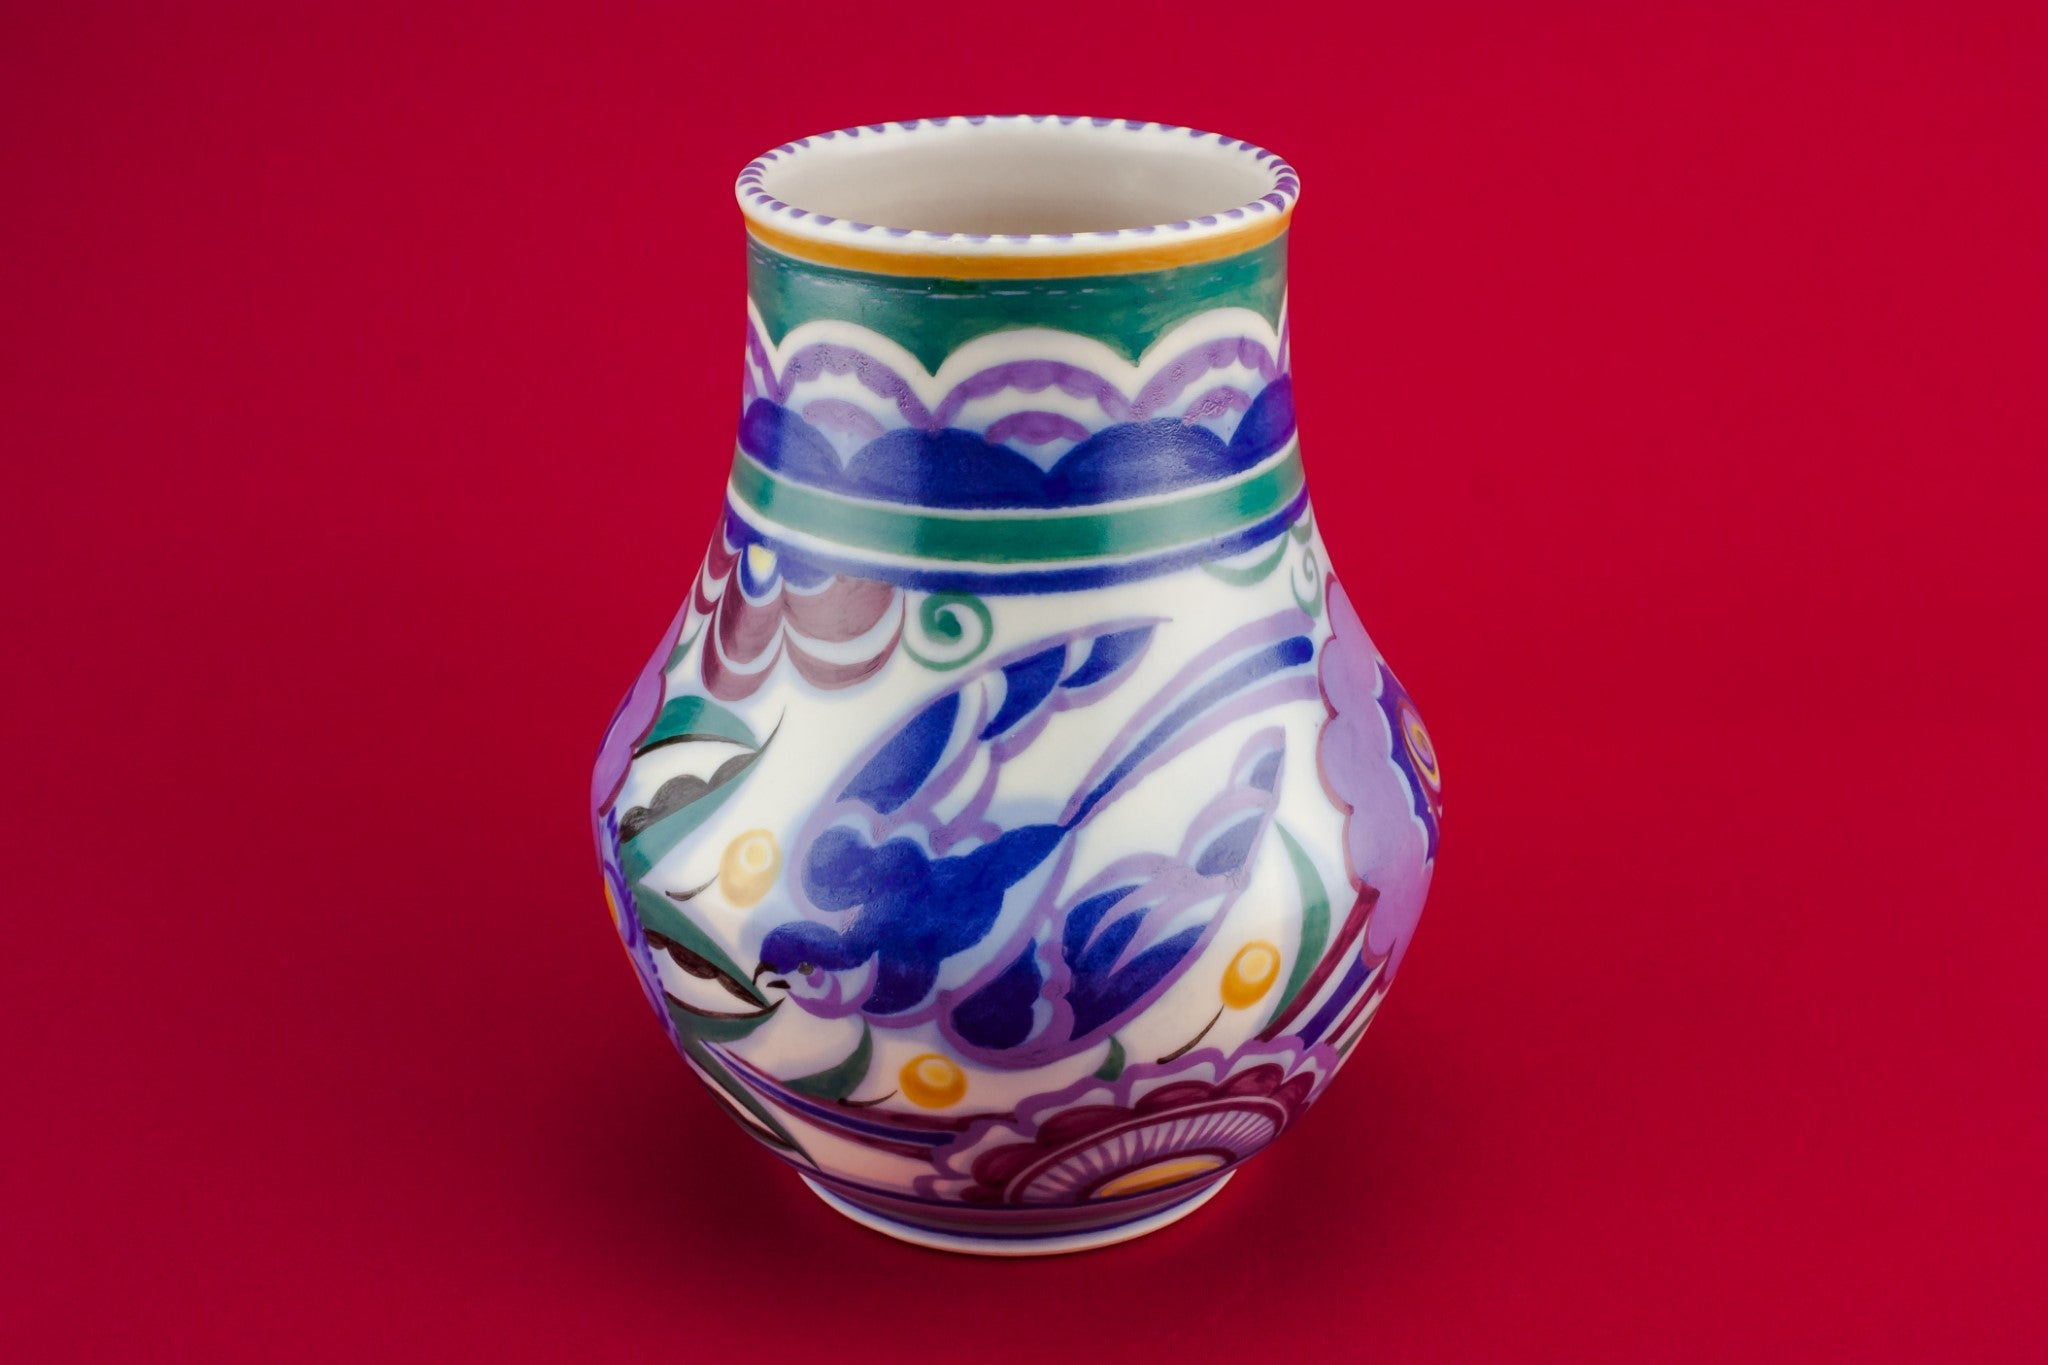 Art Deco pottery vase